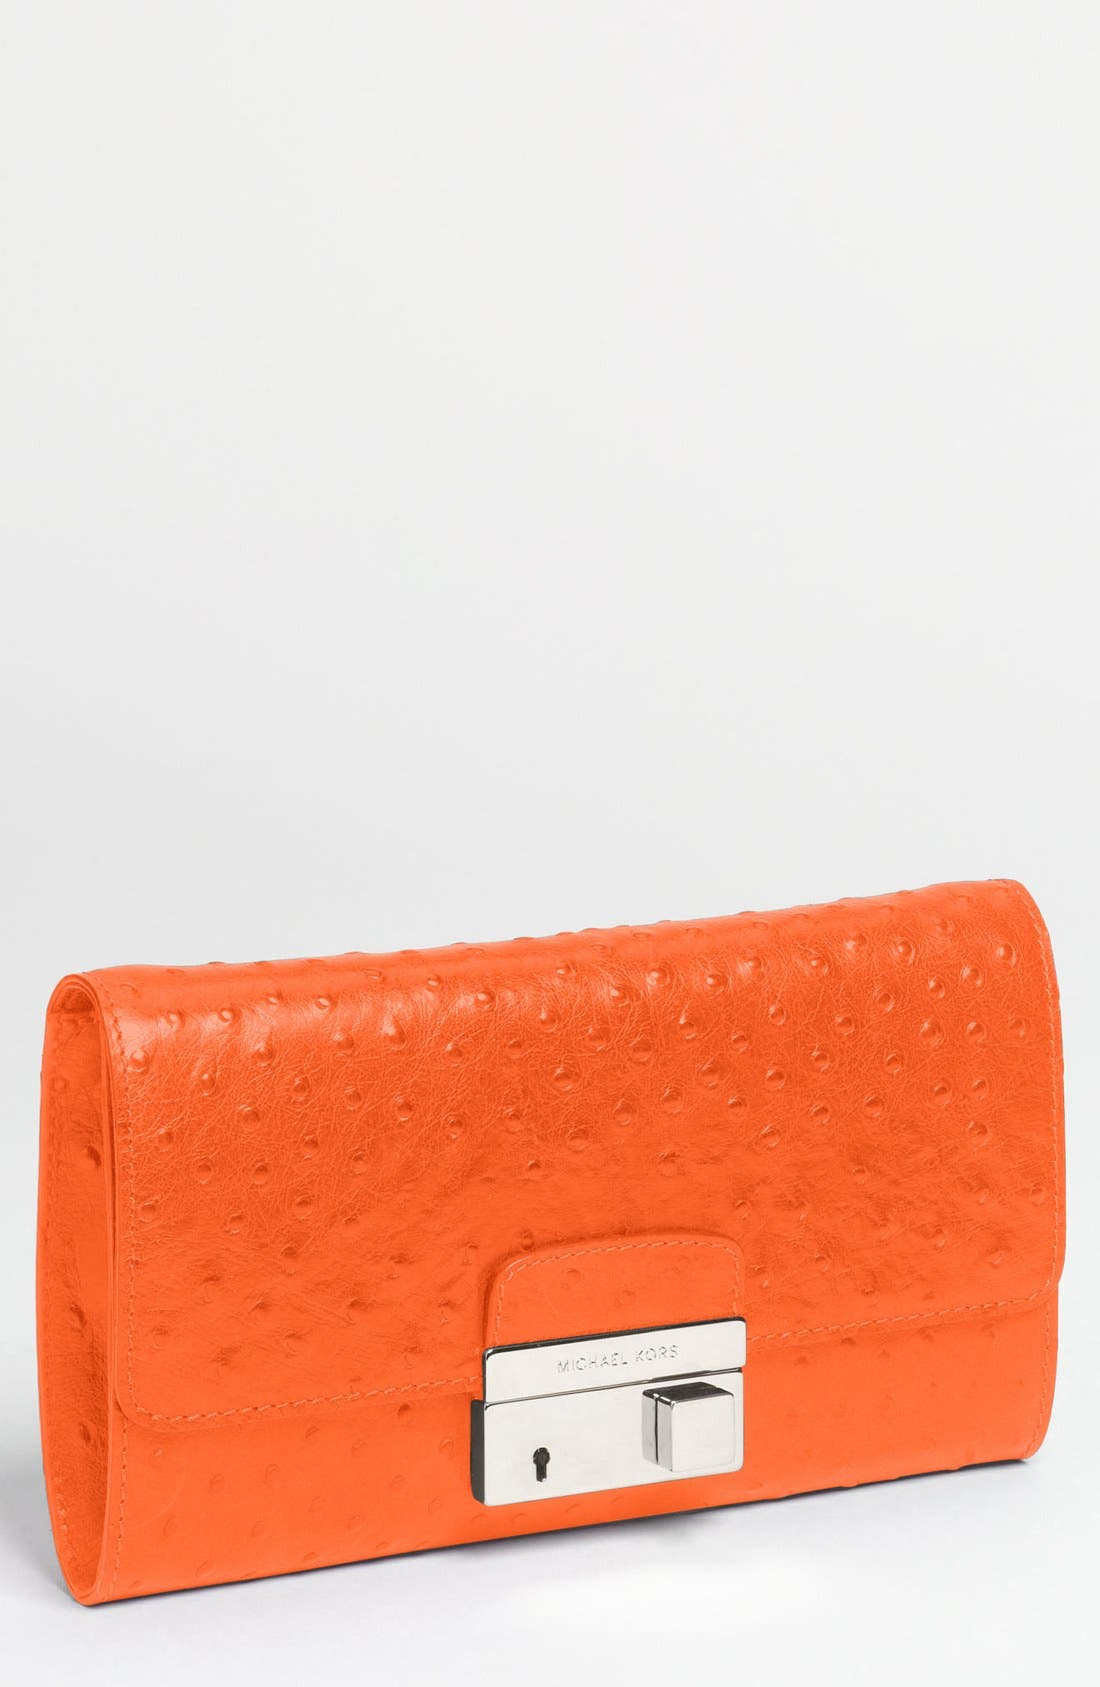 Alternate Image 1 Selected - Michael Kors 'Gia' Ostrich Embossed Leather Clutch (Online Only)